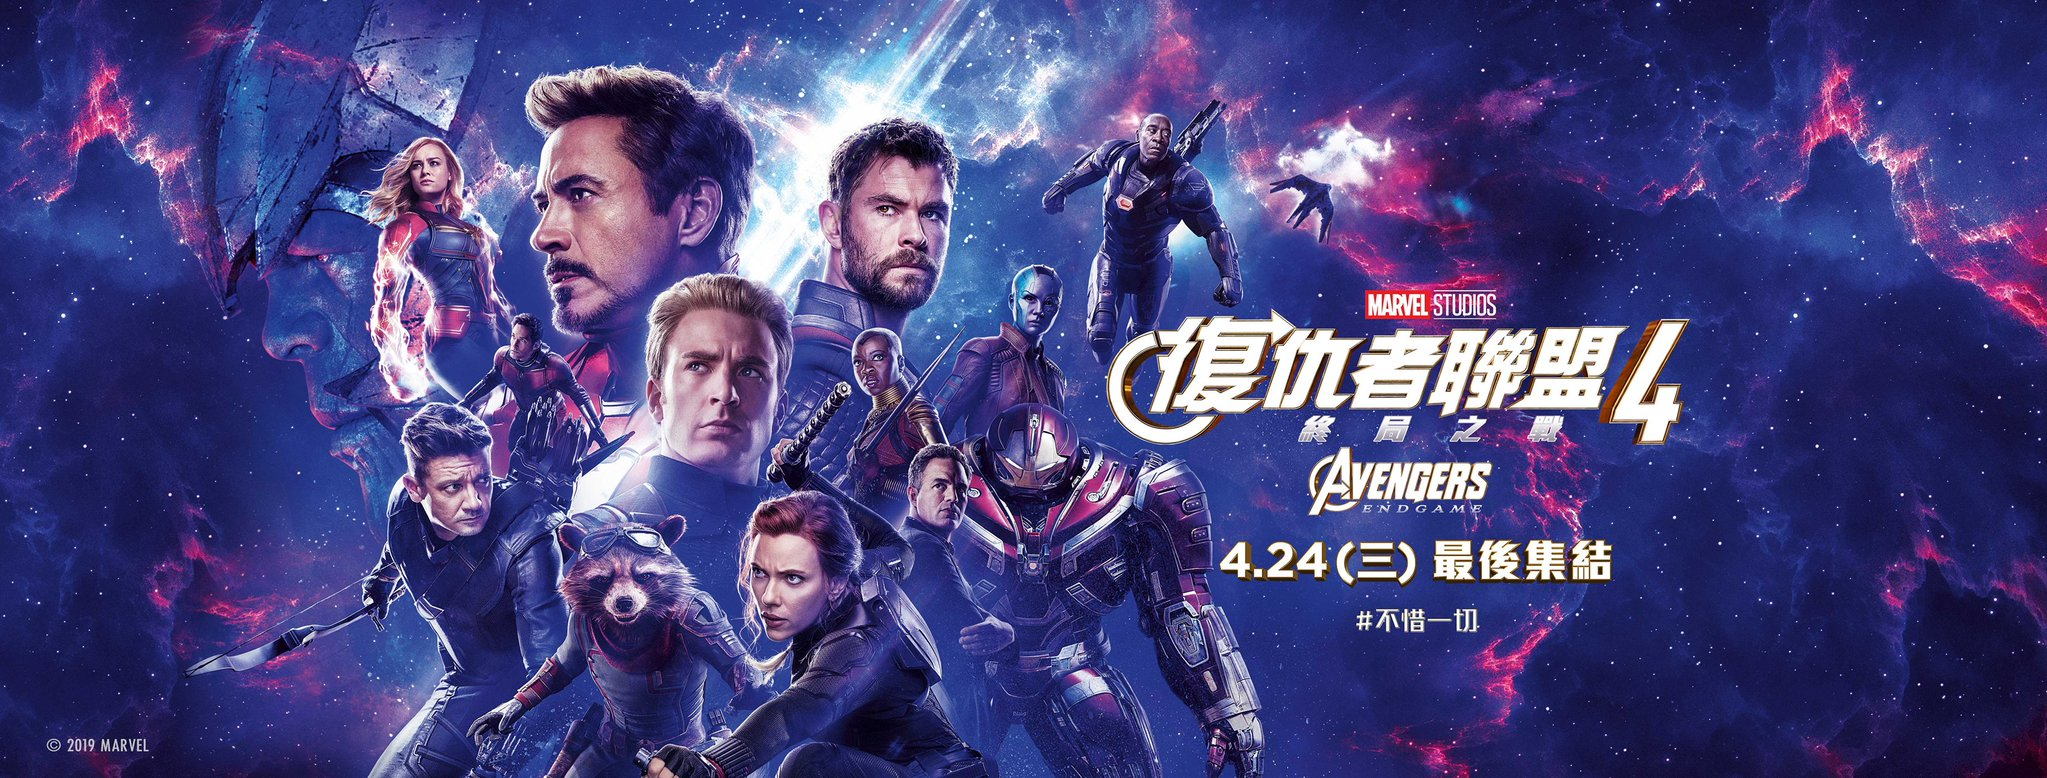 D2RCacnVAAY4ina.jpgnew-avengers-endgame-promo-spot-and-an-international-poster-that-features-hulkbuster1